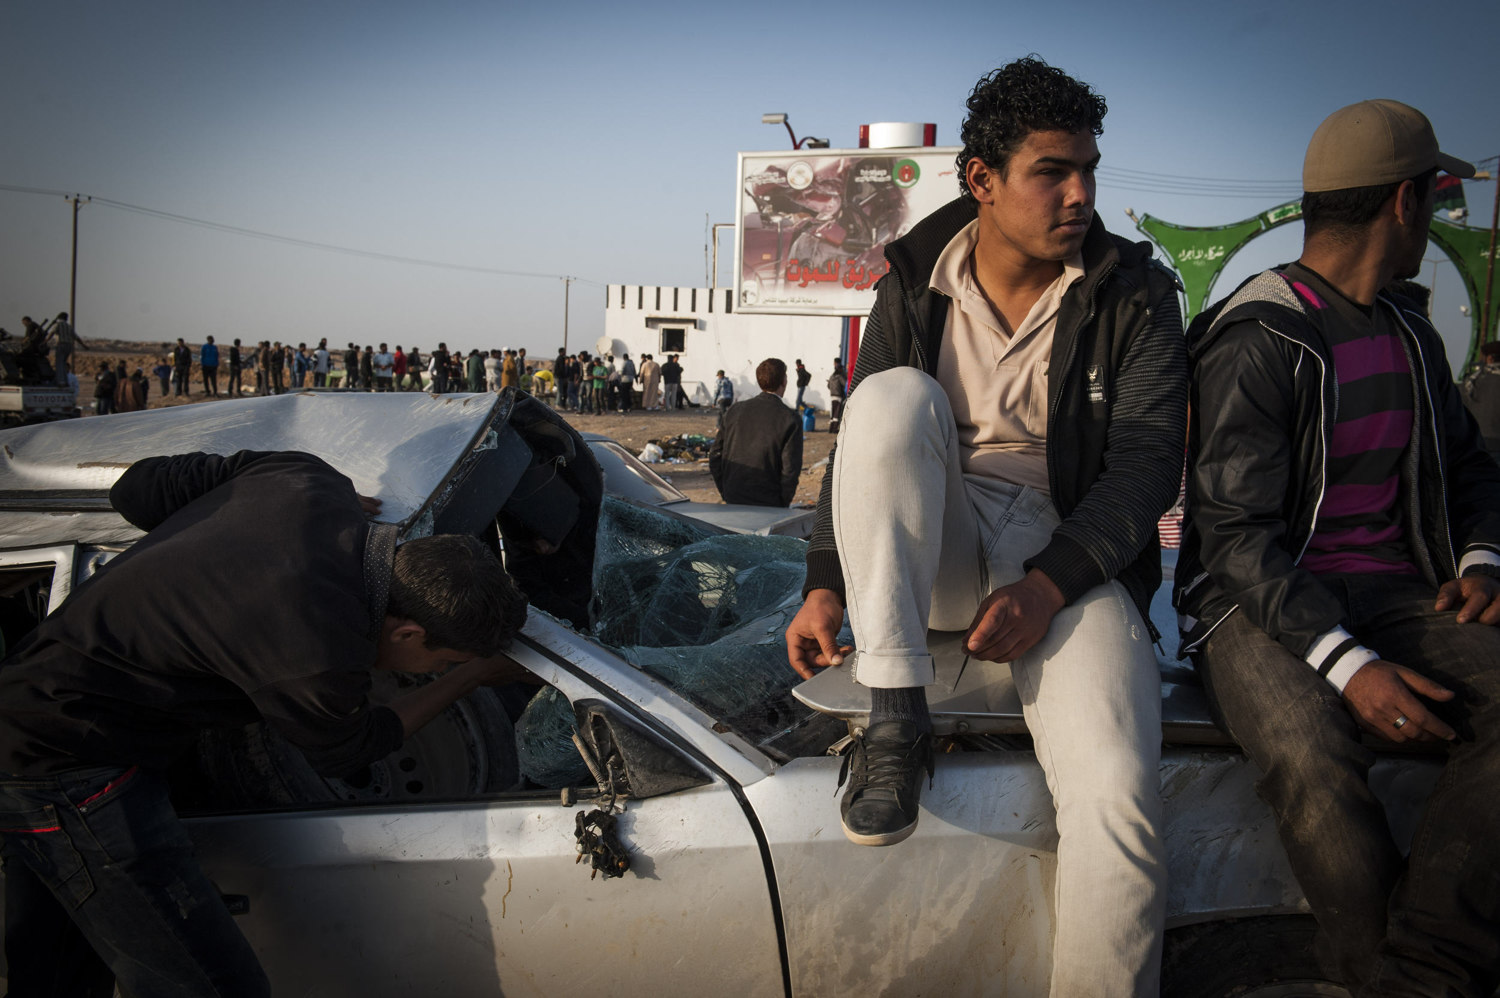 Boys sit on a broken car outside of the check point in Brega, Libya. Rebel troops are largely made out of Volunteers lack knowledge of military movement or weaponry.